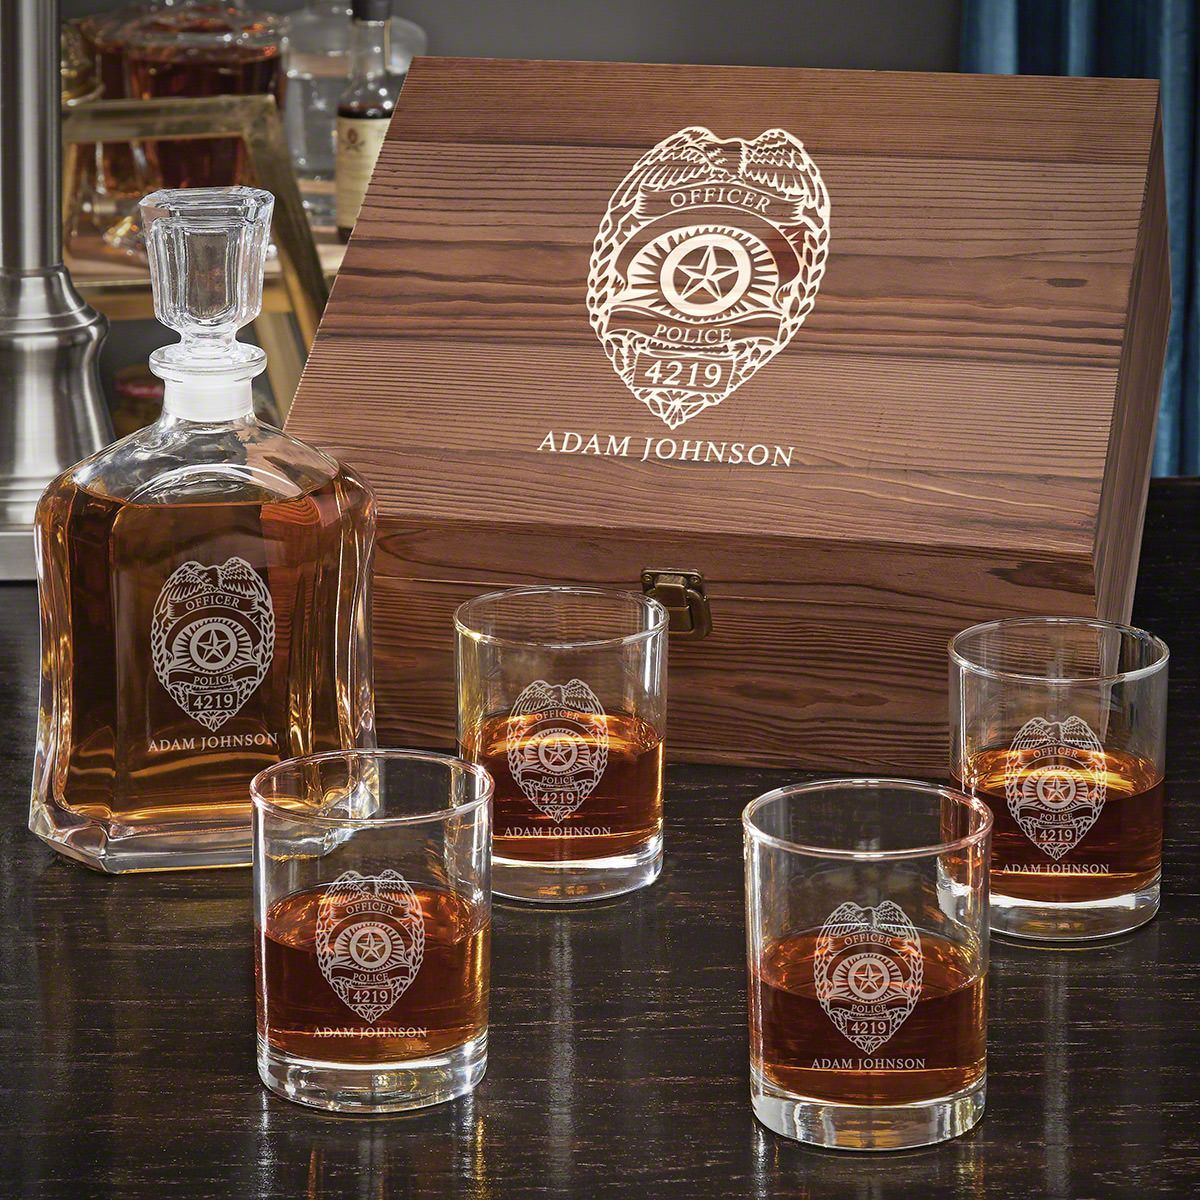 Police Badge Personalized Whiskey Argos Decanter with Eastham Glasses - Gift Set for Police